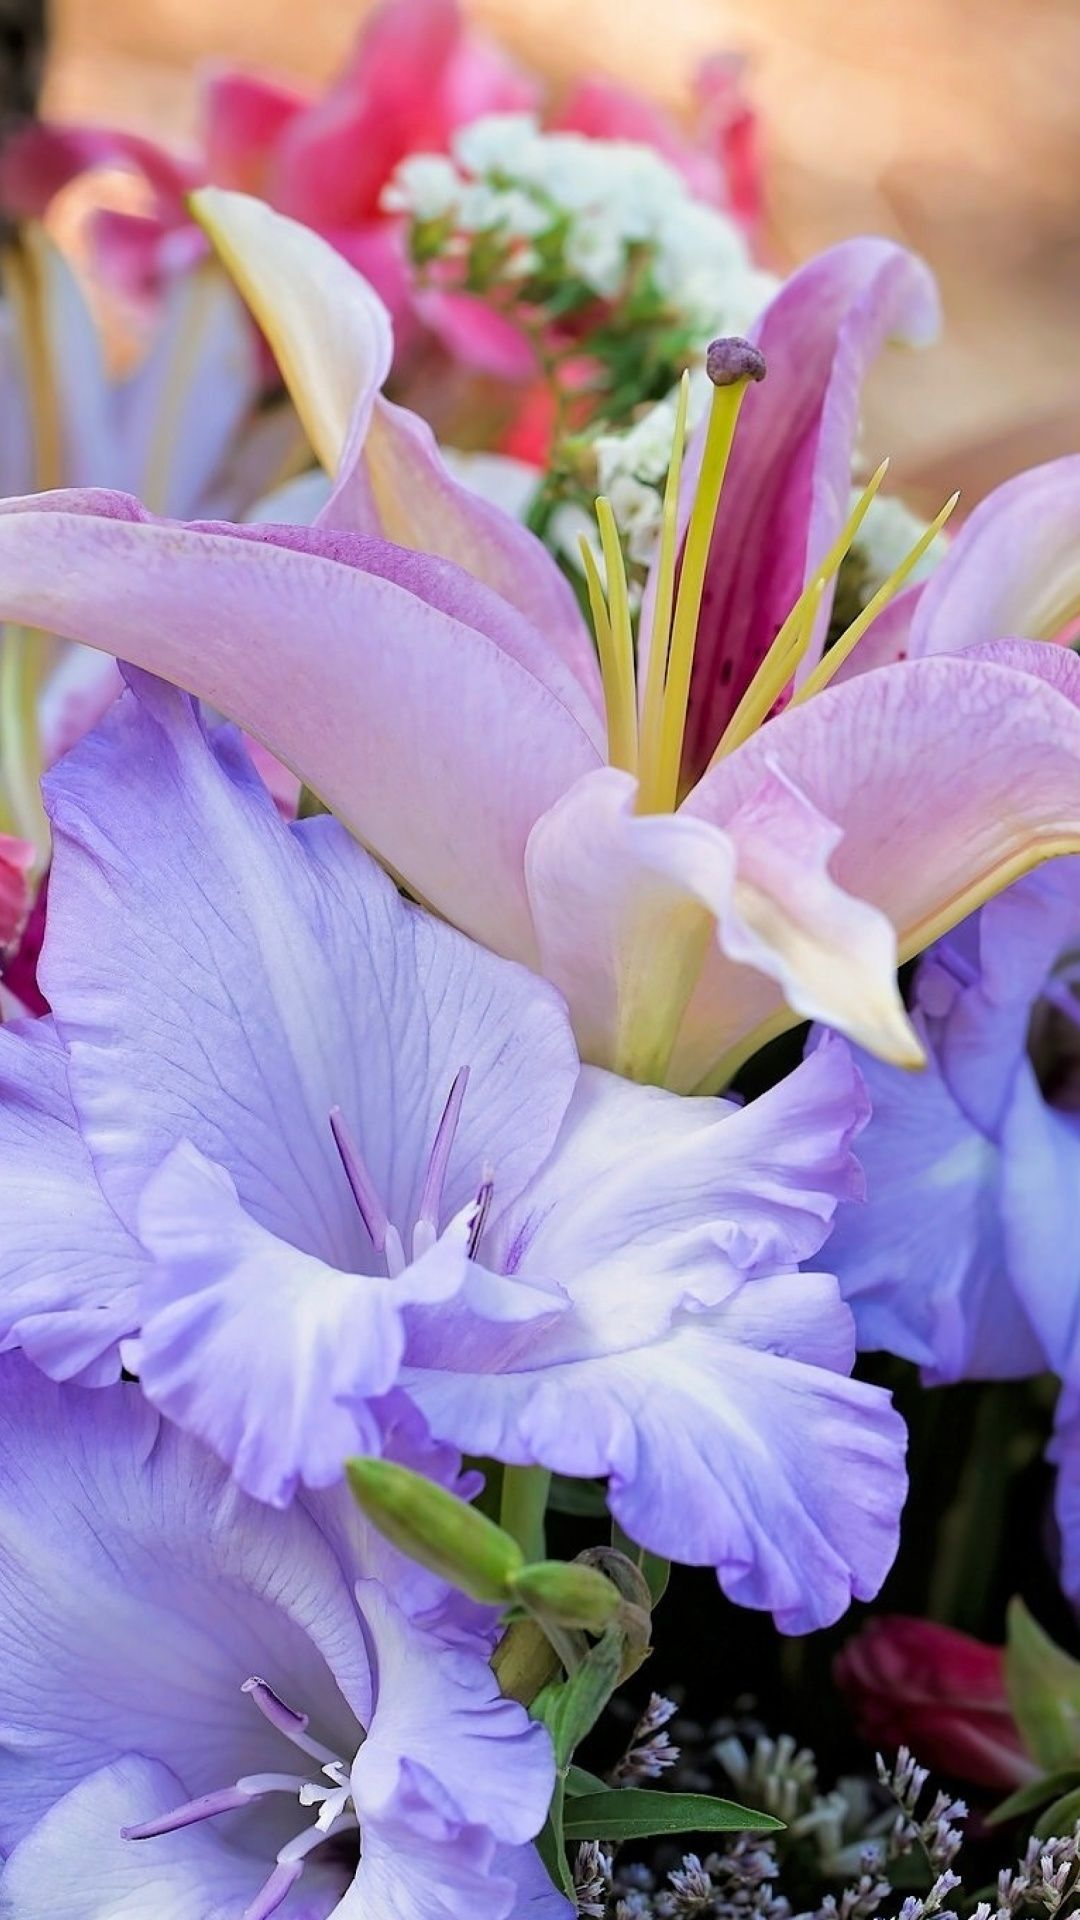 Lilies Flowers Wallpaper For